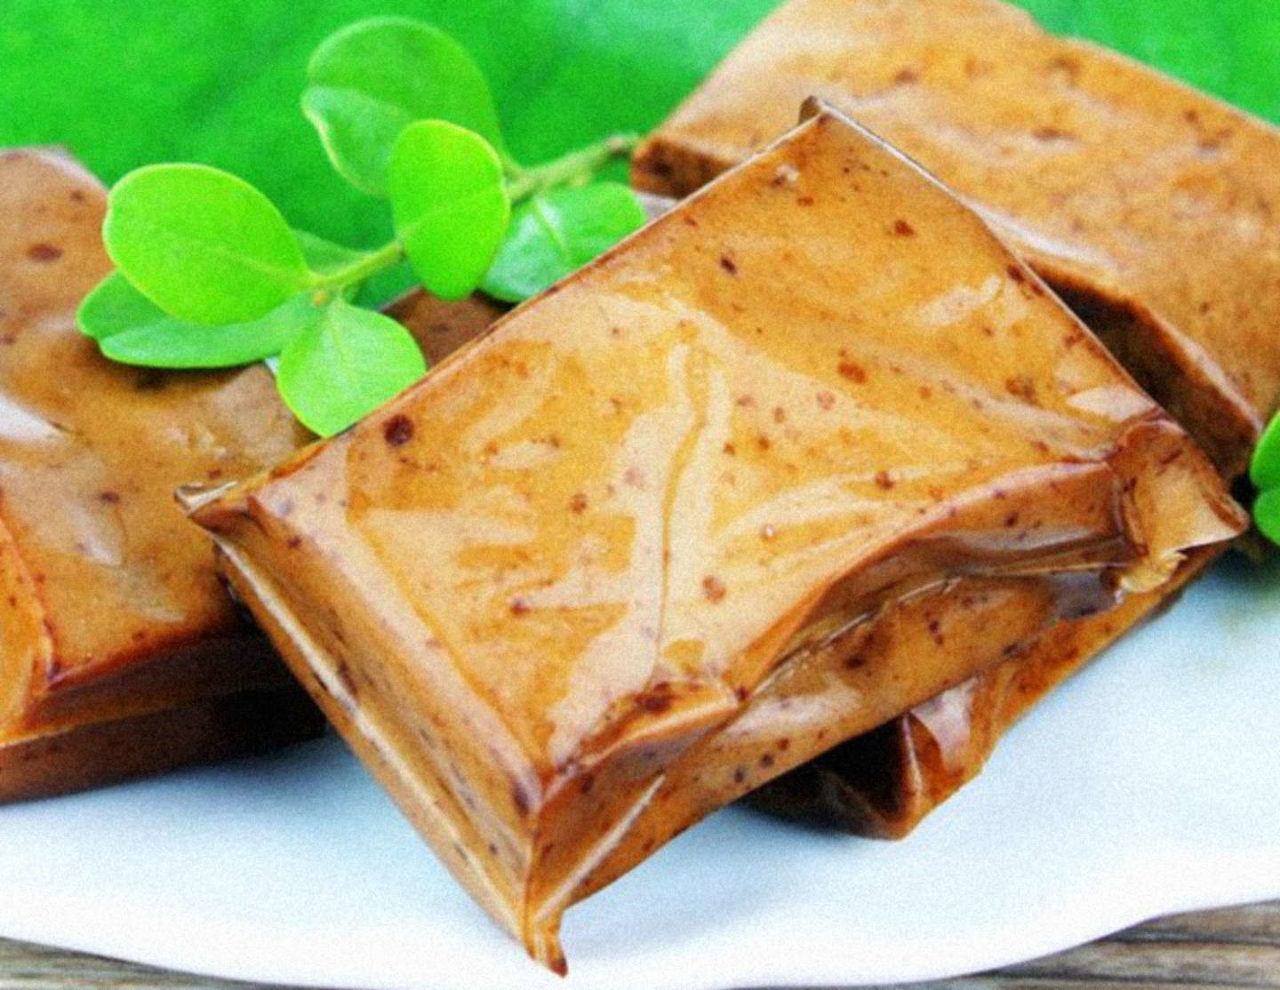 https://thesubmarine.it/wp-content/uploads/2017/10/Taiwan-Sheng-Tang-QQ-specialty-spiced-spicy-tofu-curd-16g-dry-snack-food.jpg_640x640-1280x990.jpg